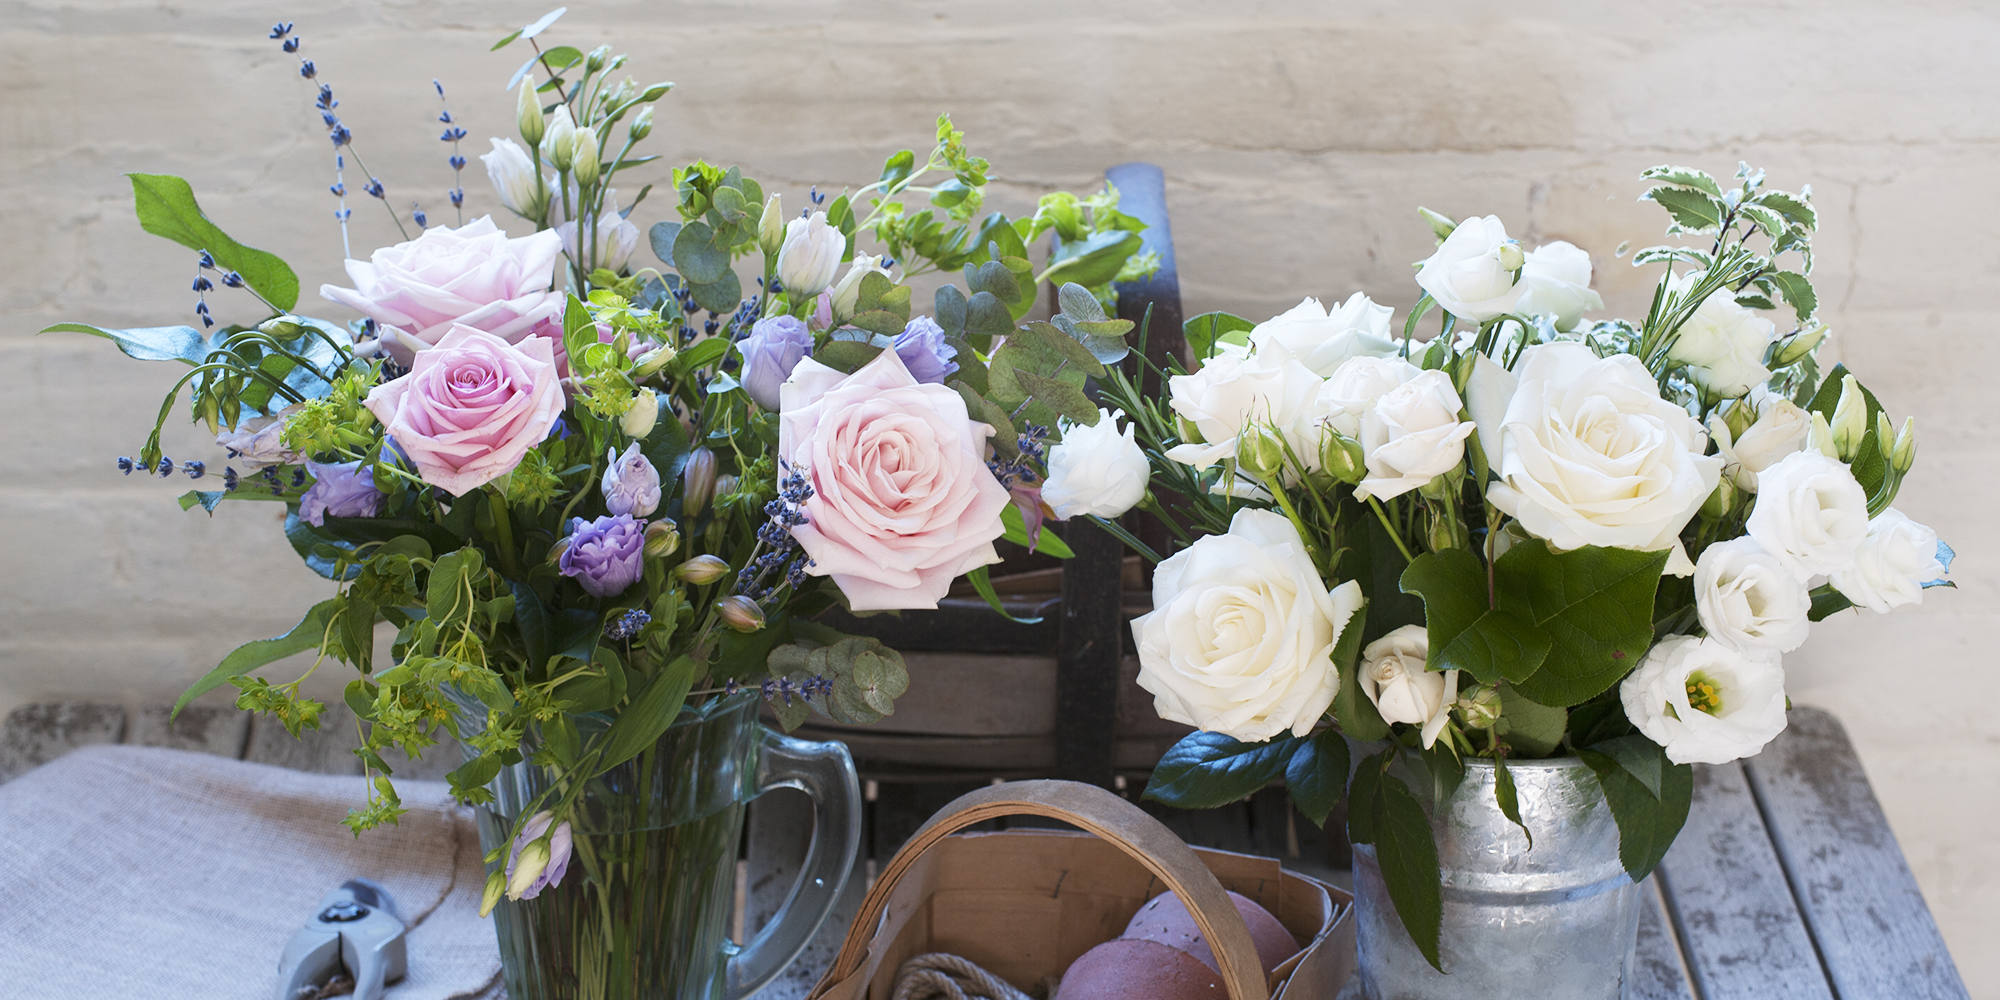 The Country Living & Interflora bouquet collection